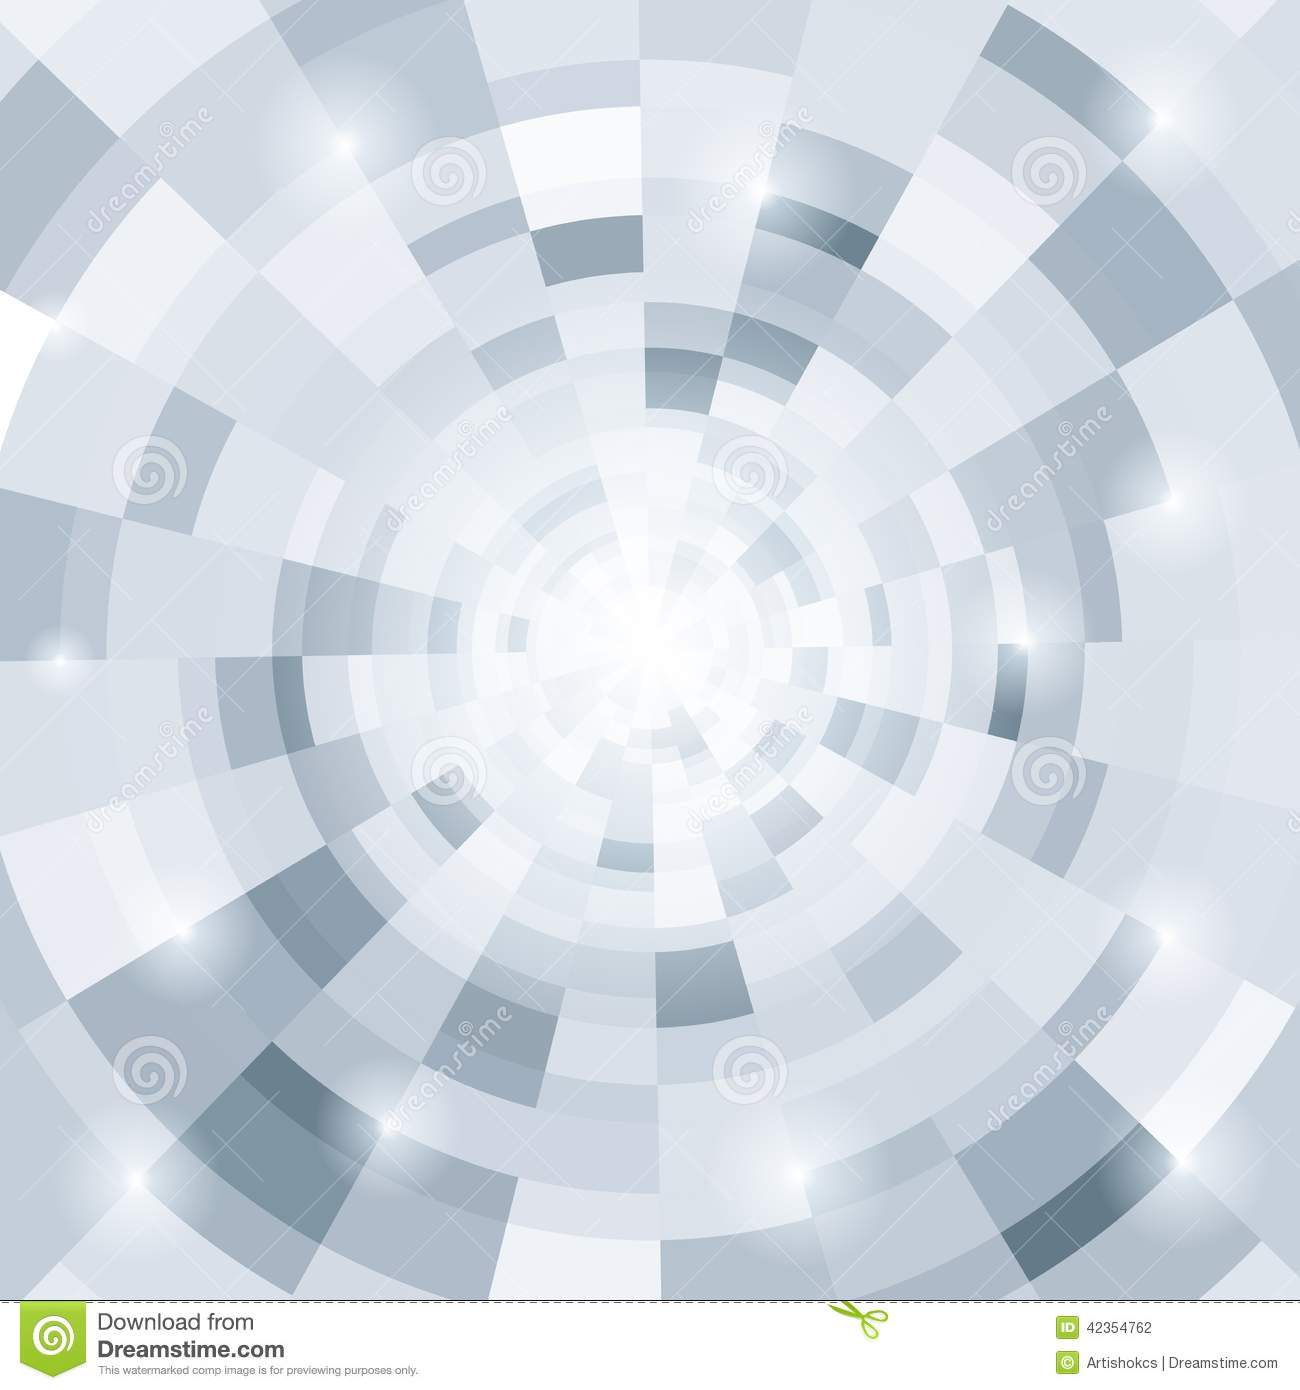 Abstract Circular Gray Background Stock Vector - Image ...